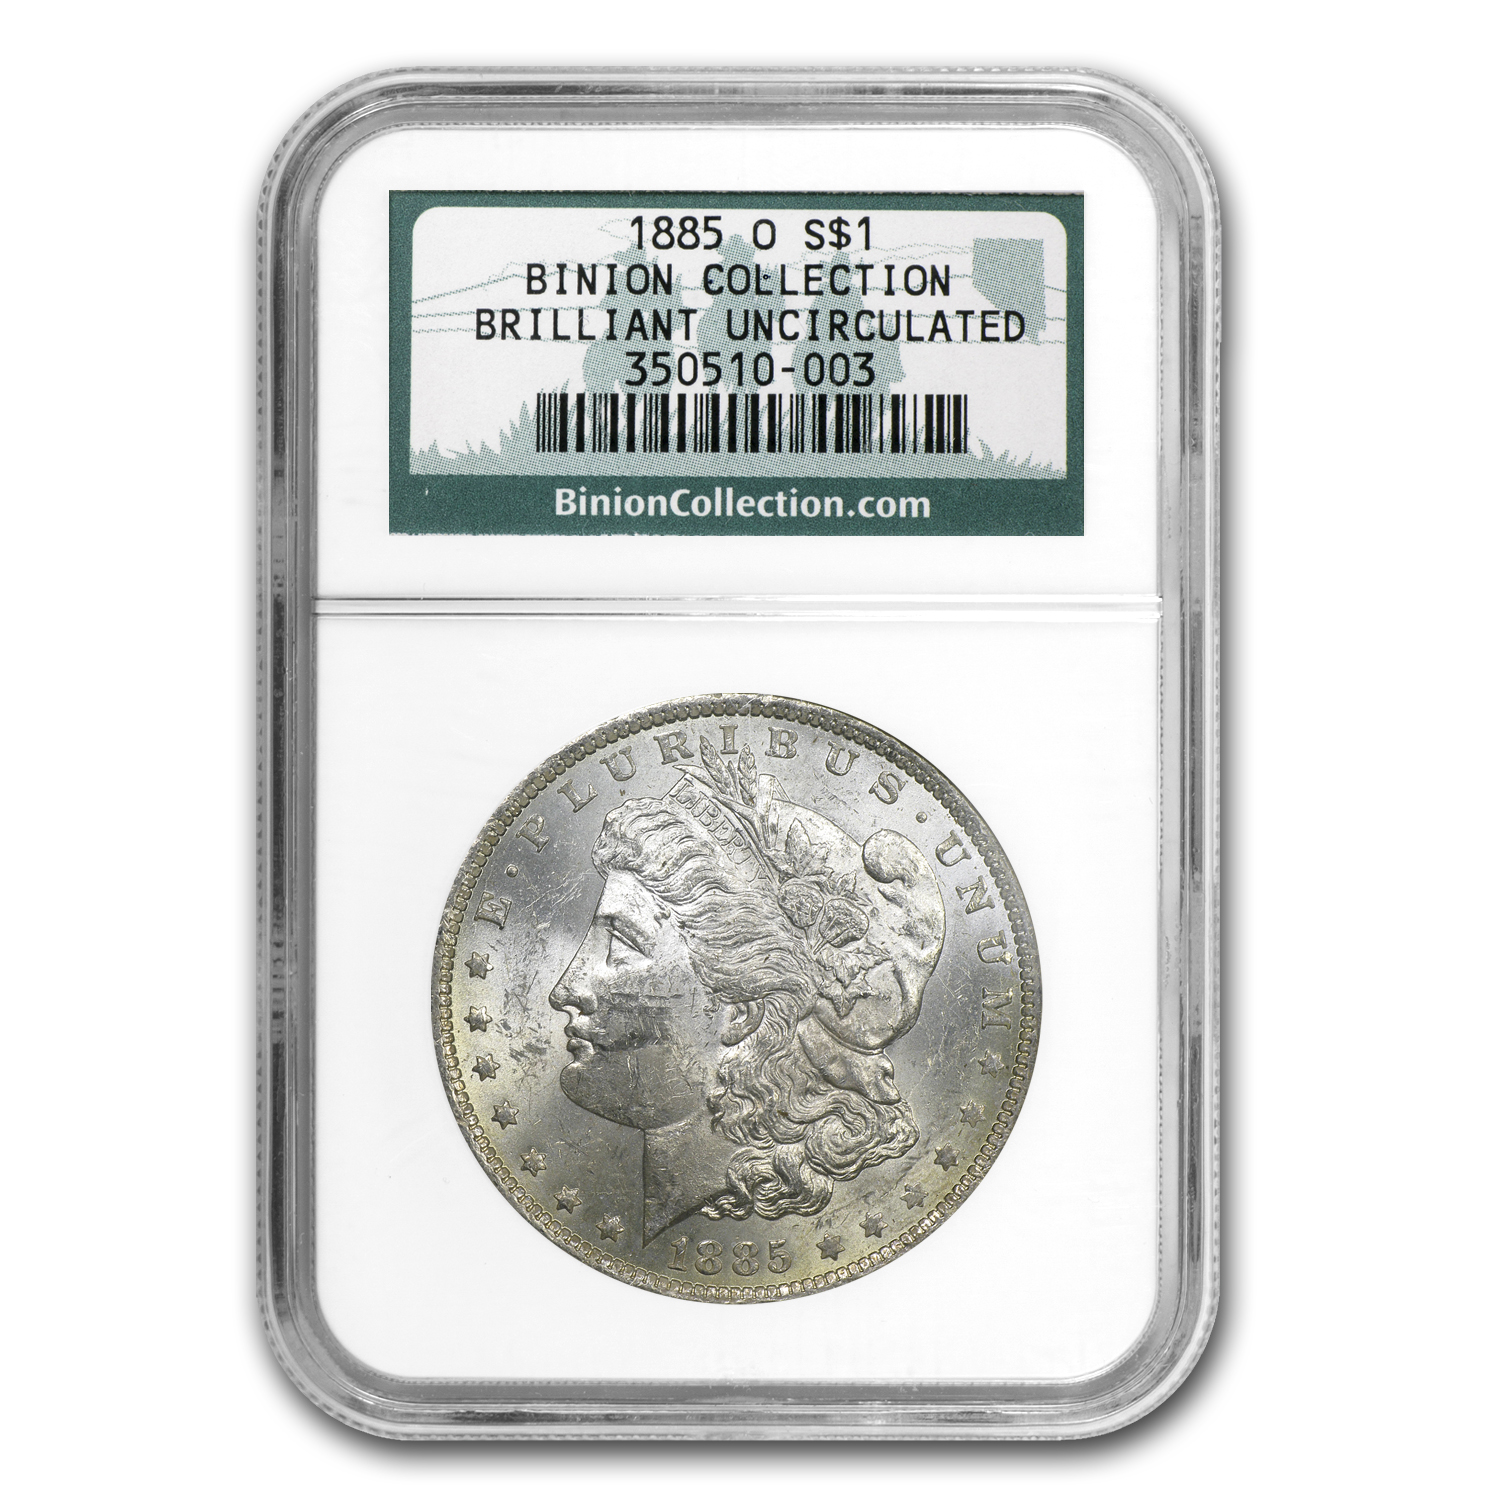 1885-O Morgan Dollar - BU NGC From the Ted Binion Collection